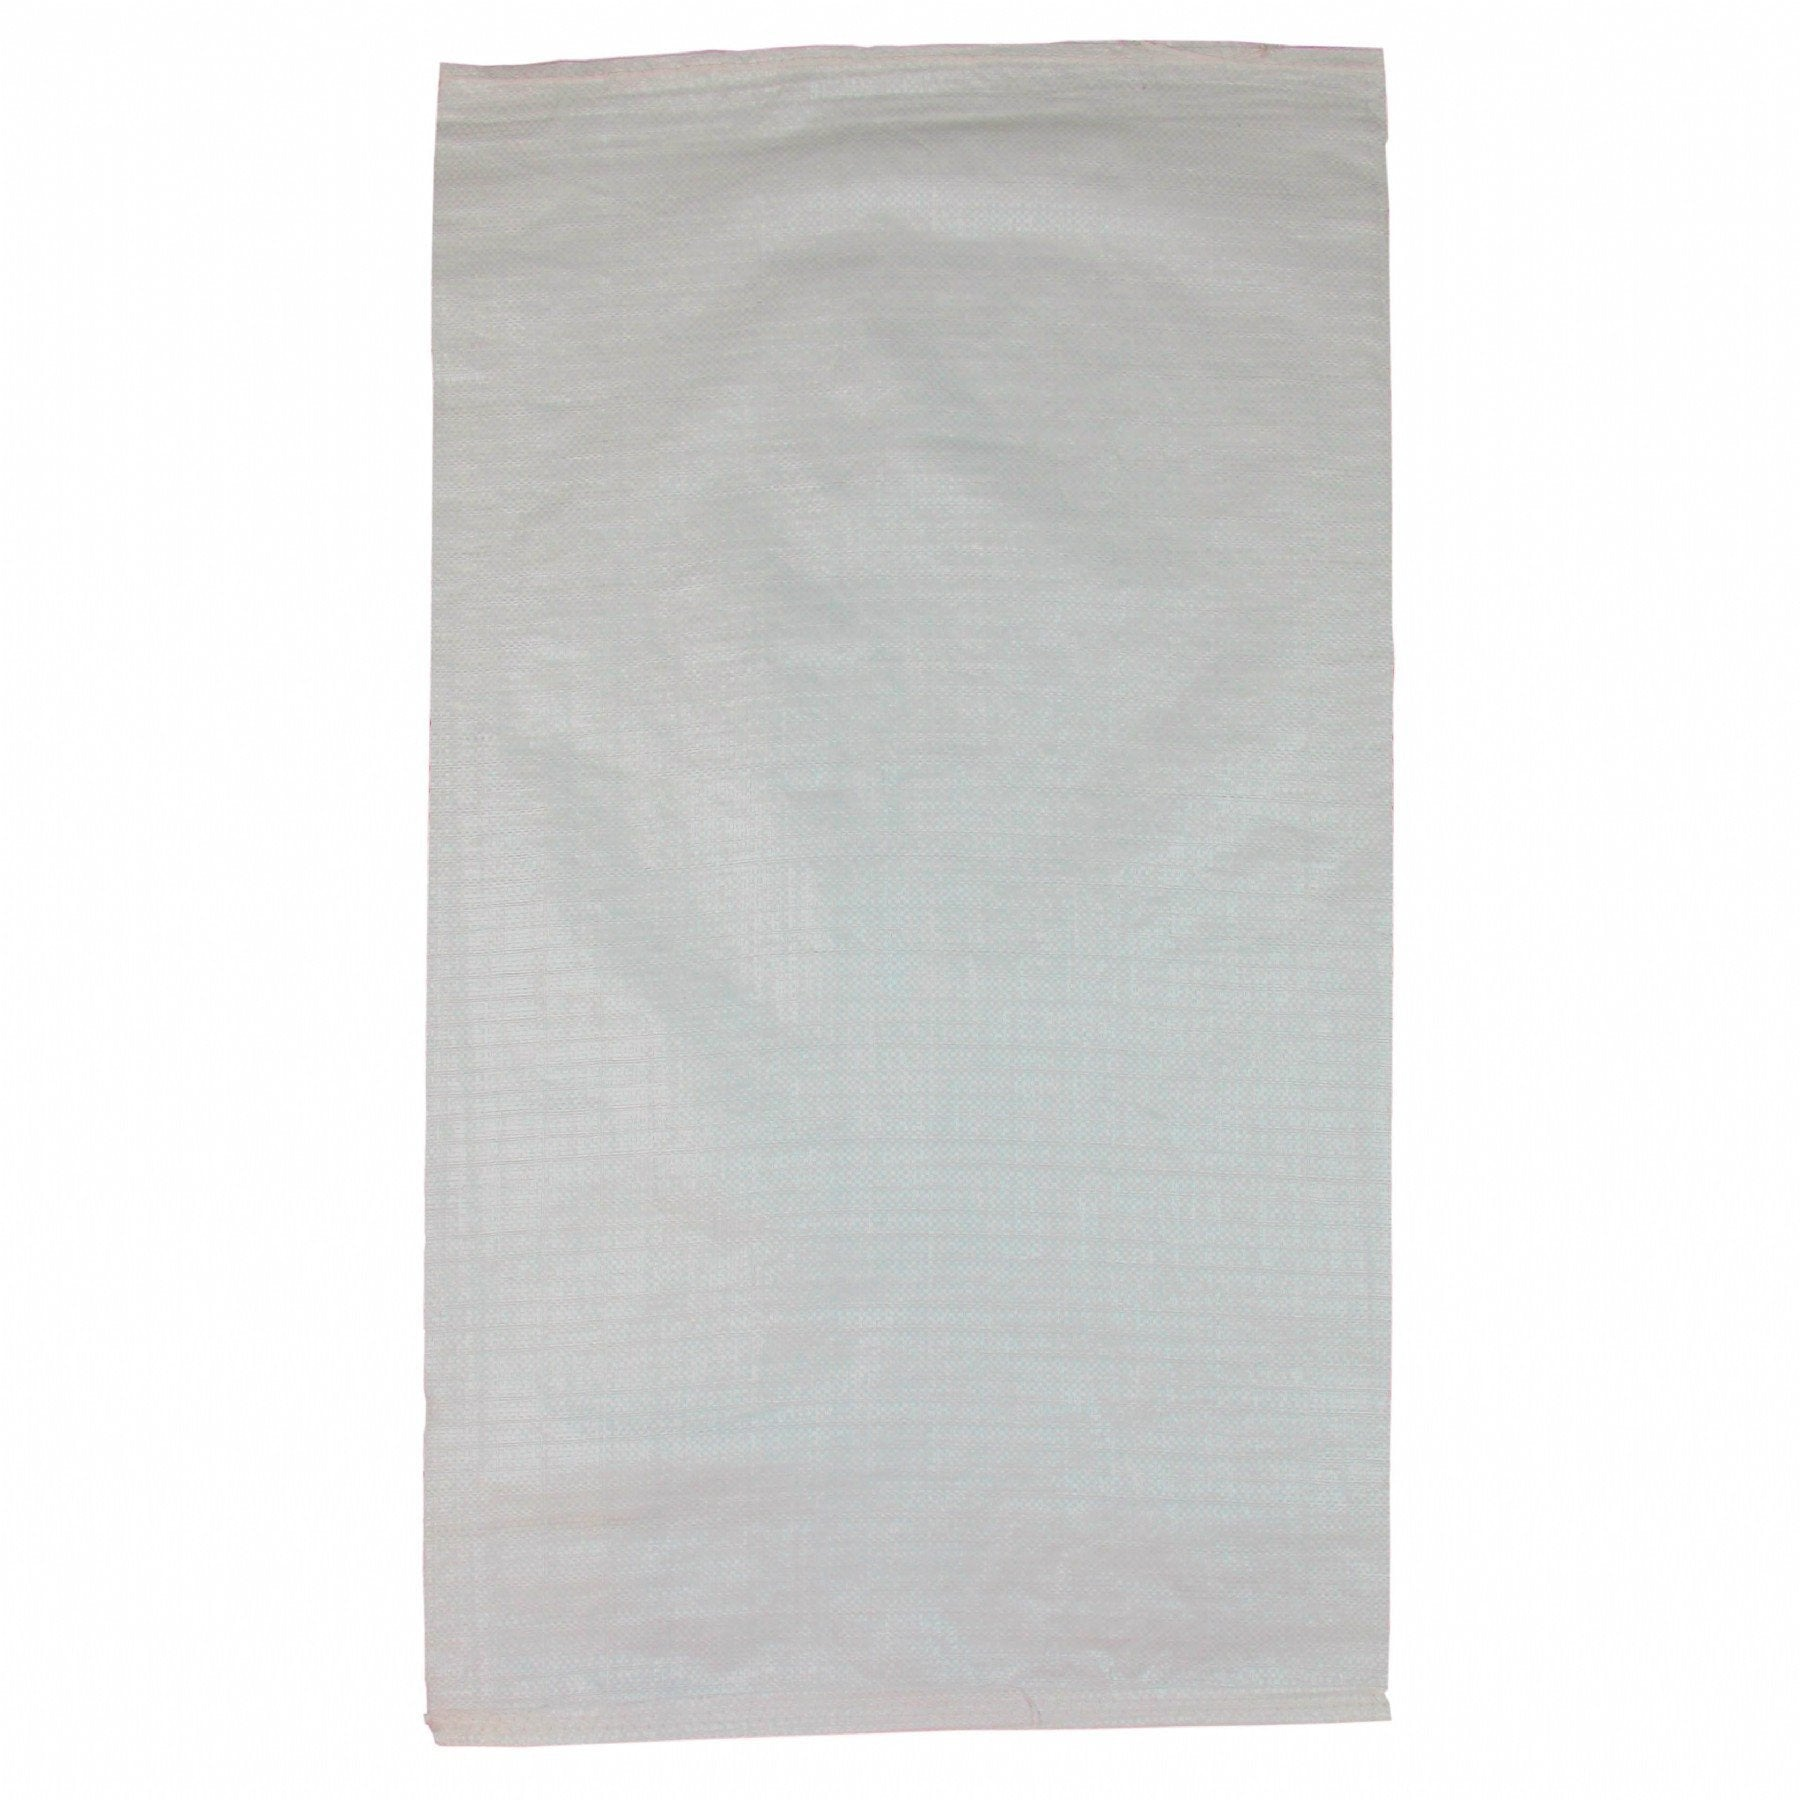 585 X 1,020mm White UV Stabilised Unlaminated Woven Polypropylene (Polywoven) Bag Sack - Pack of 10 ProEarth-Normal-Prospectors